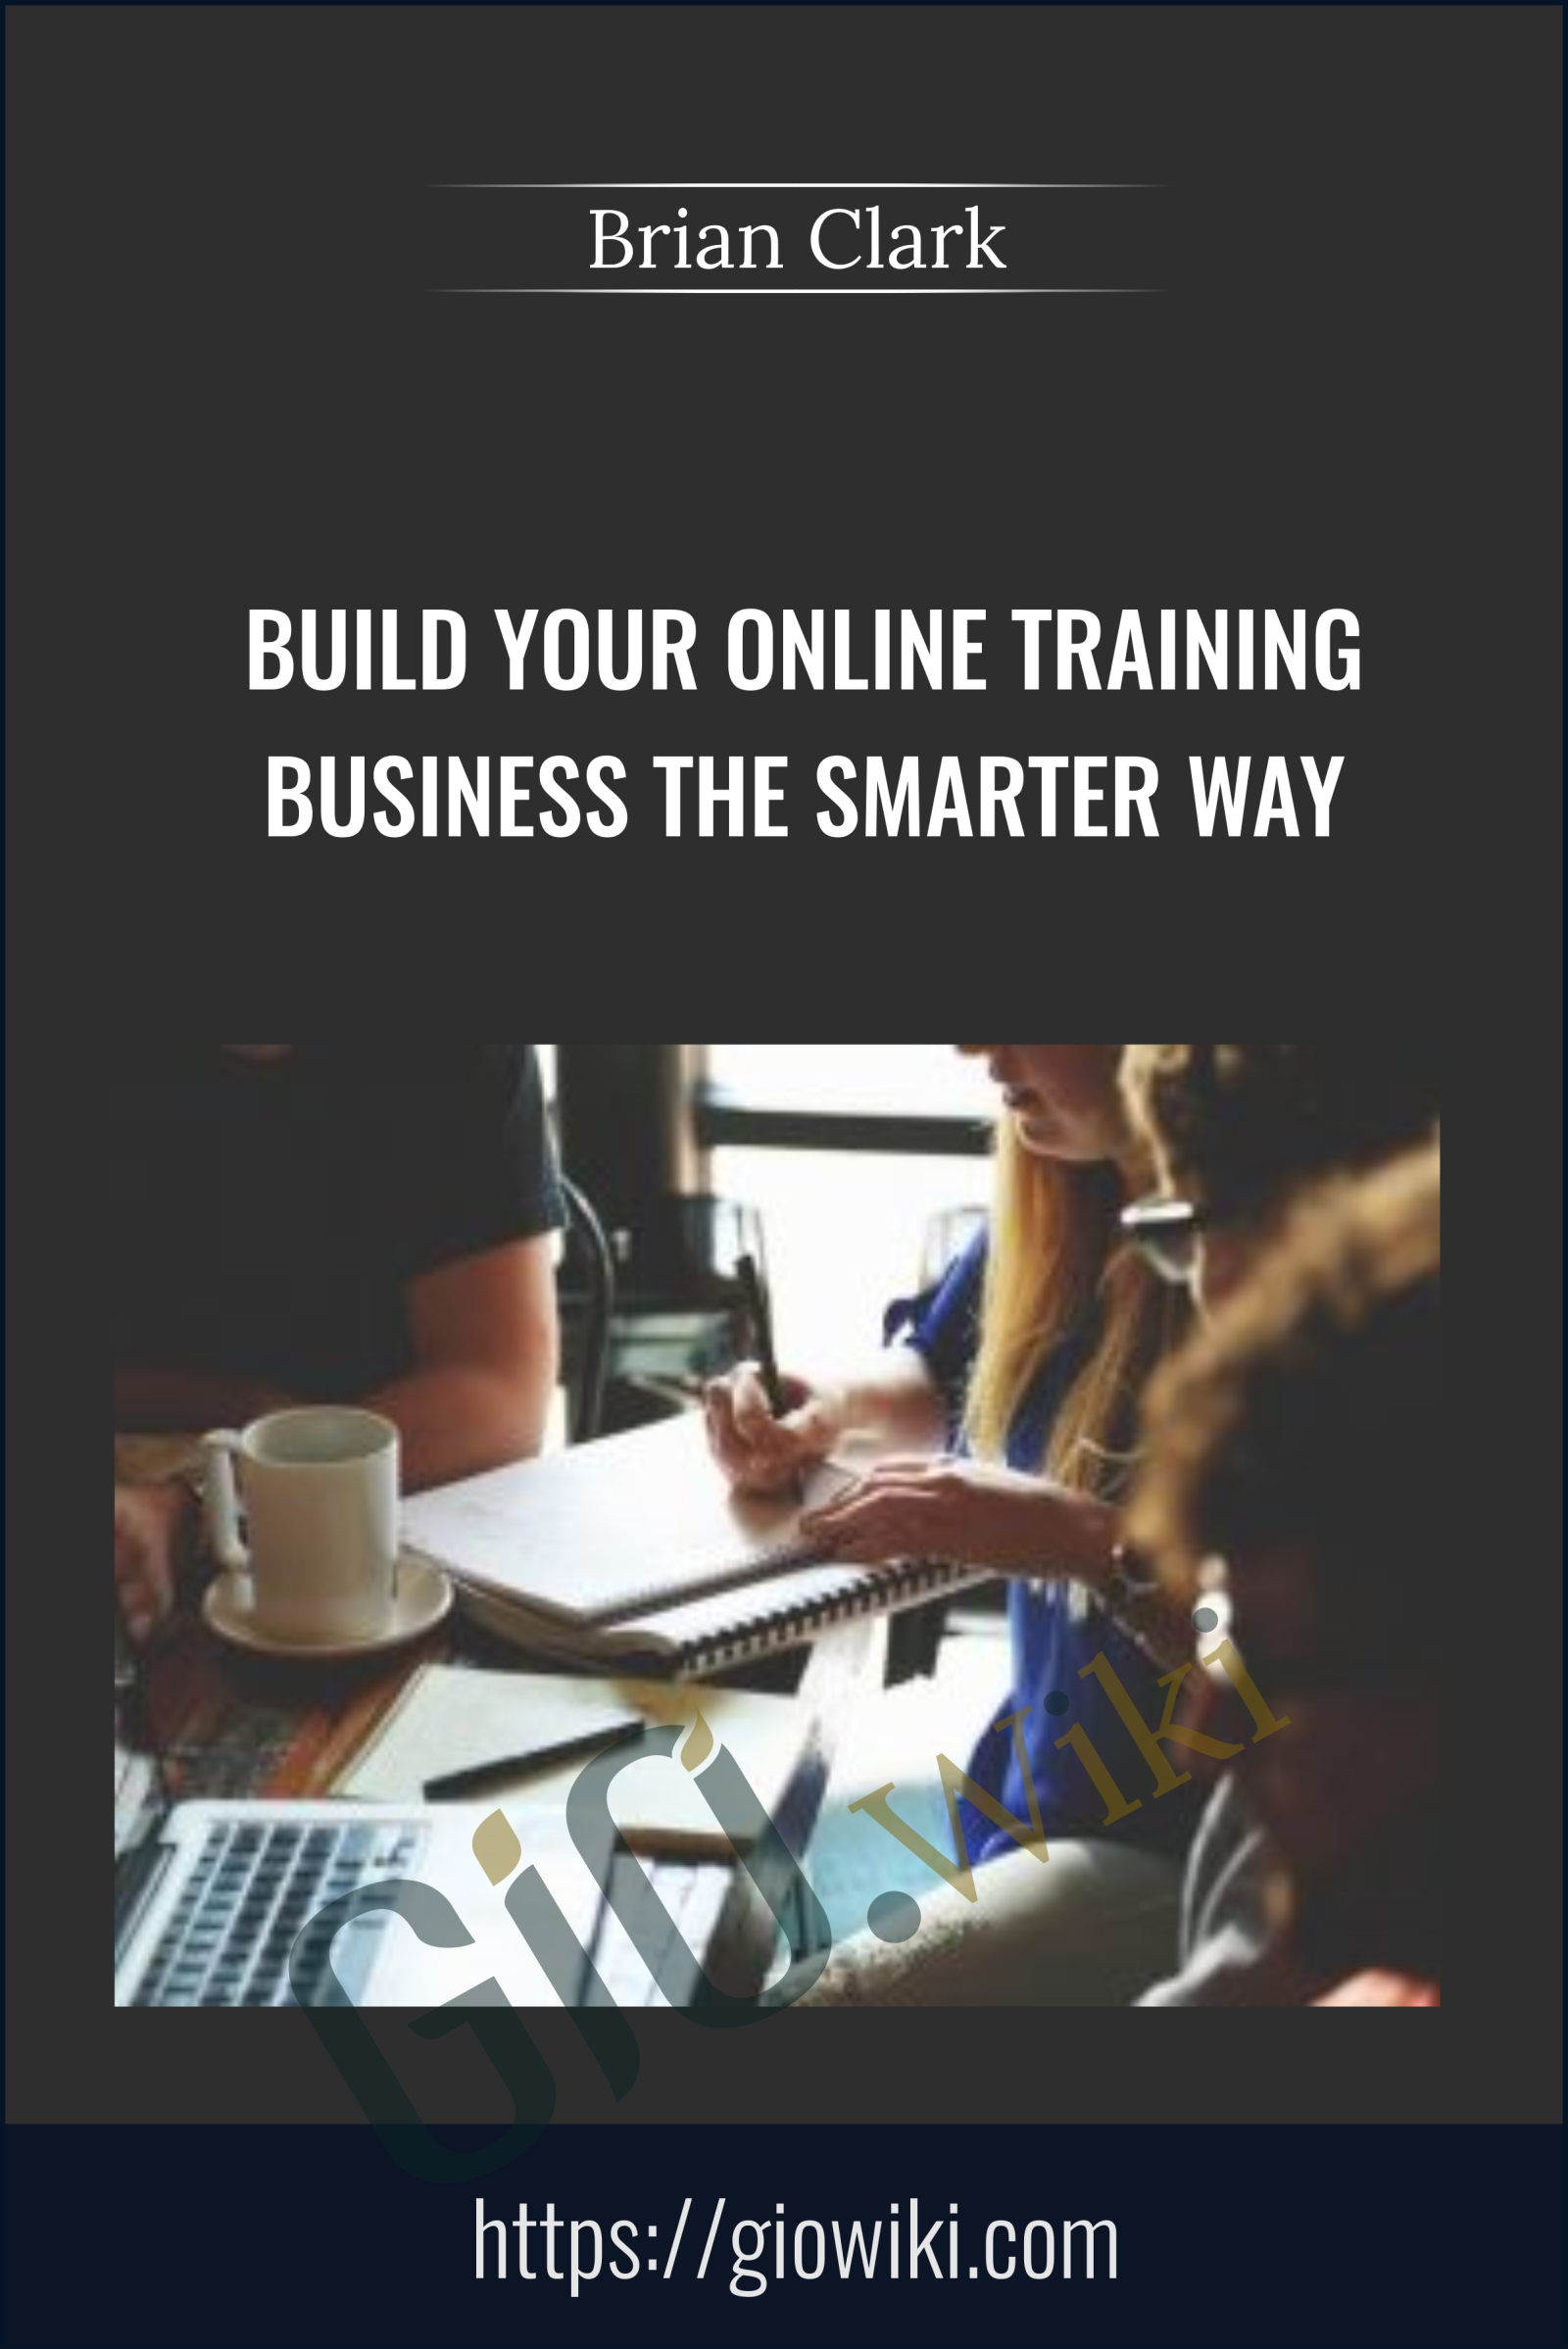 Build Your Online Training Business the Smarter Way - Brian Clark